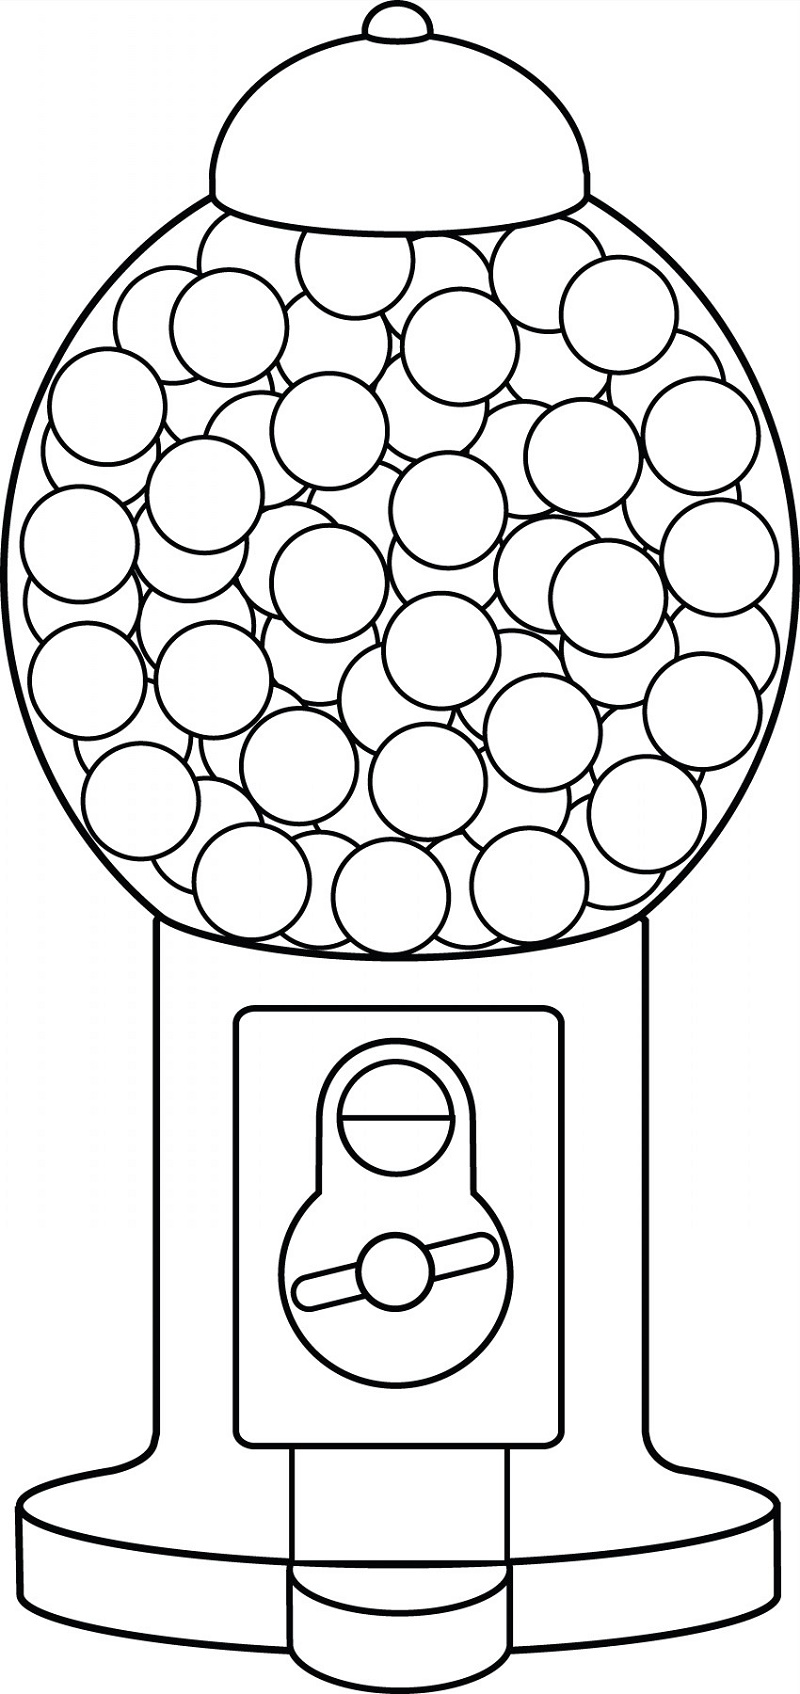 Gumball Machine Coloring Page Free